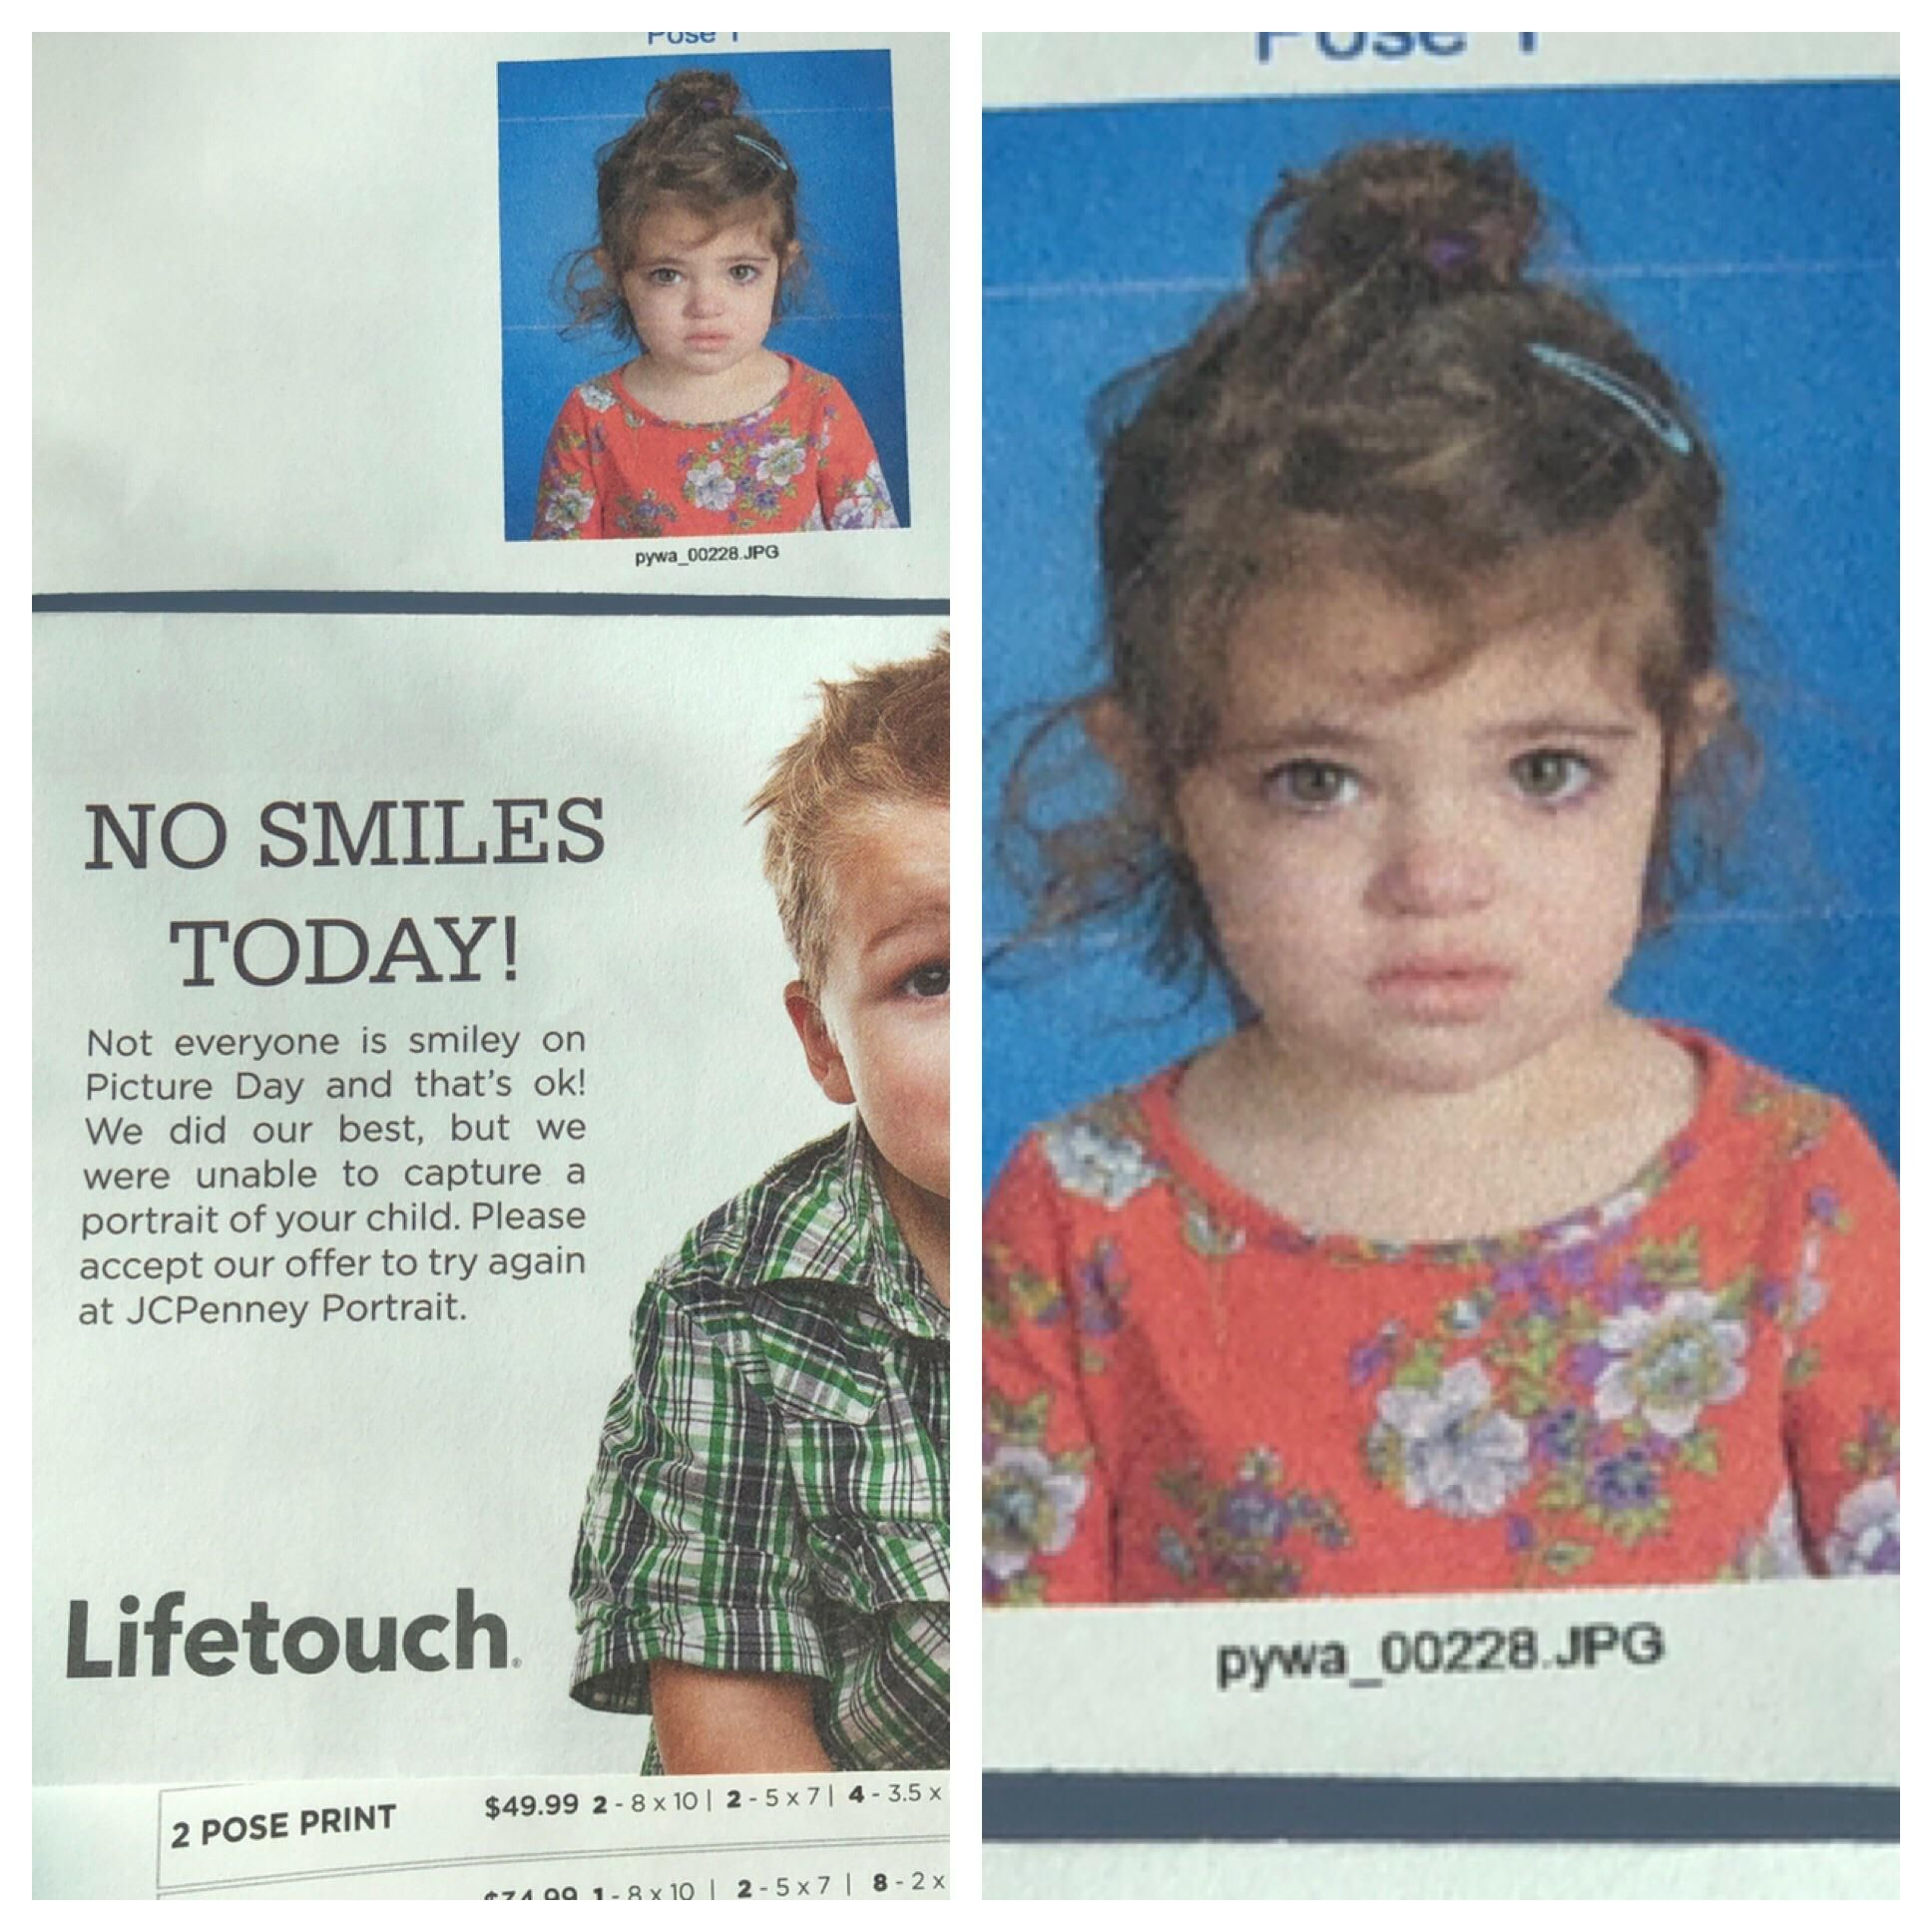 My daughters first ever school photo. She was so excited for days, went in and got mugshot instead.